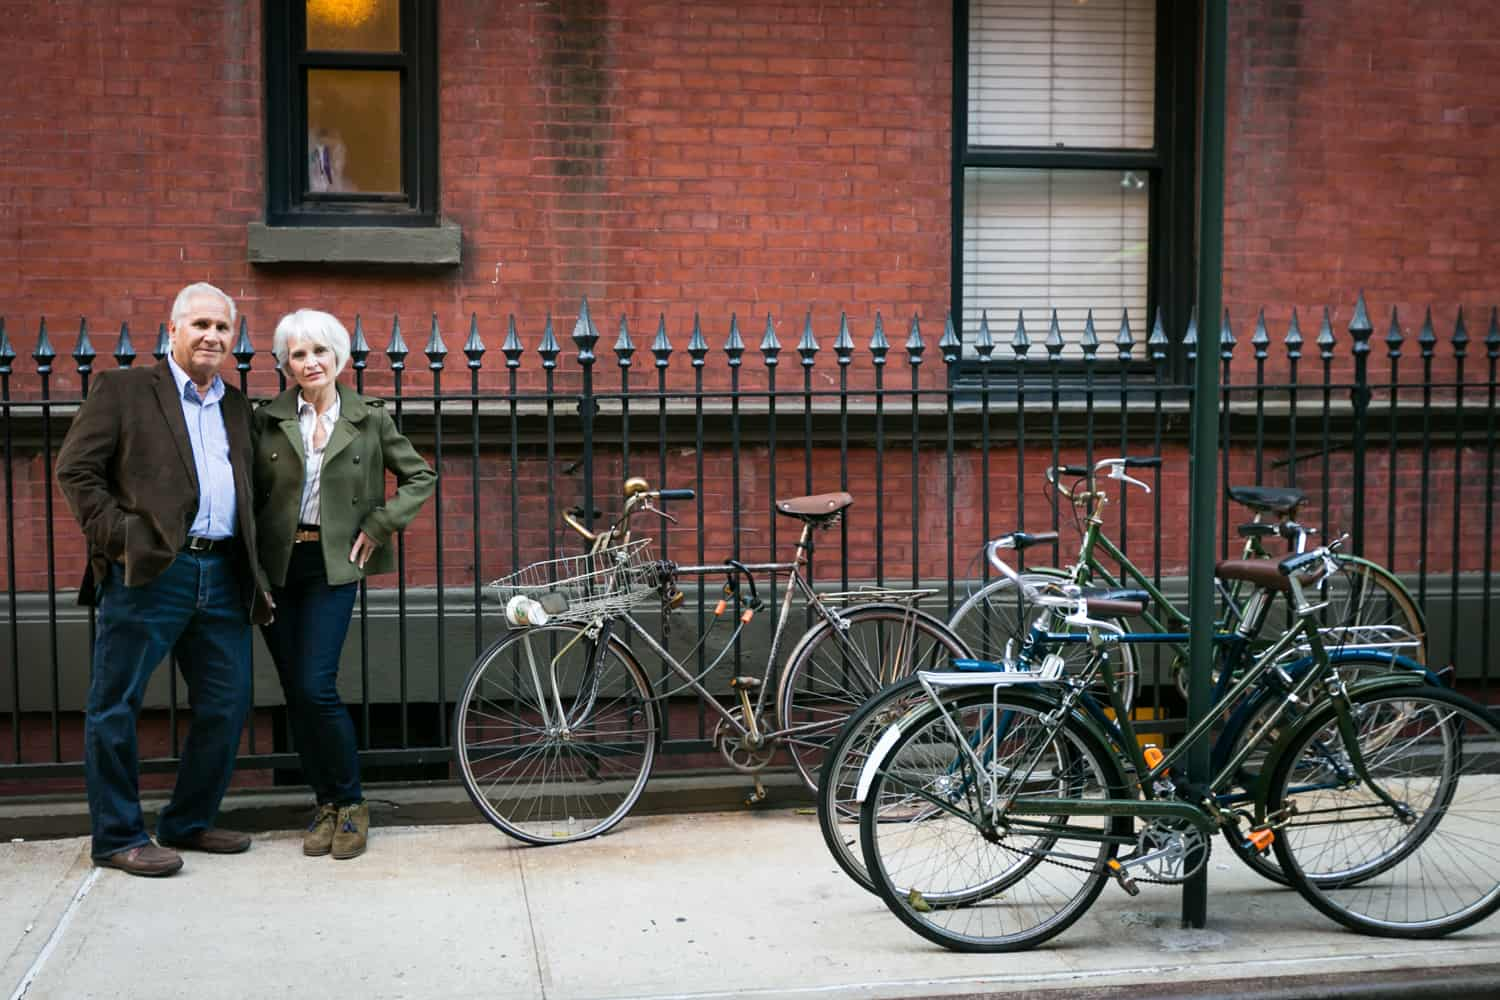 Older couple leaning on fence to left of parked bicycles